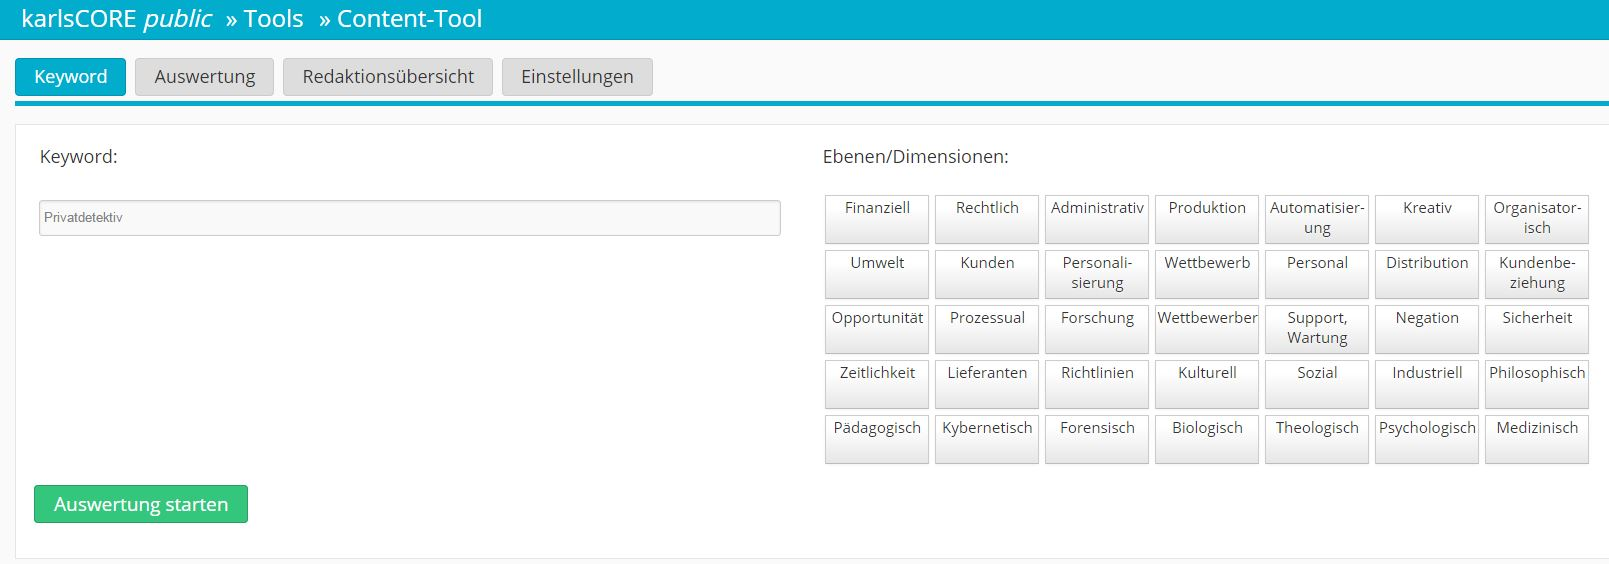 Screenshot_ Content Tool_ Karl Kratz1